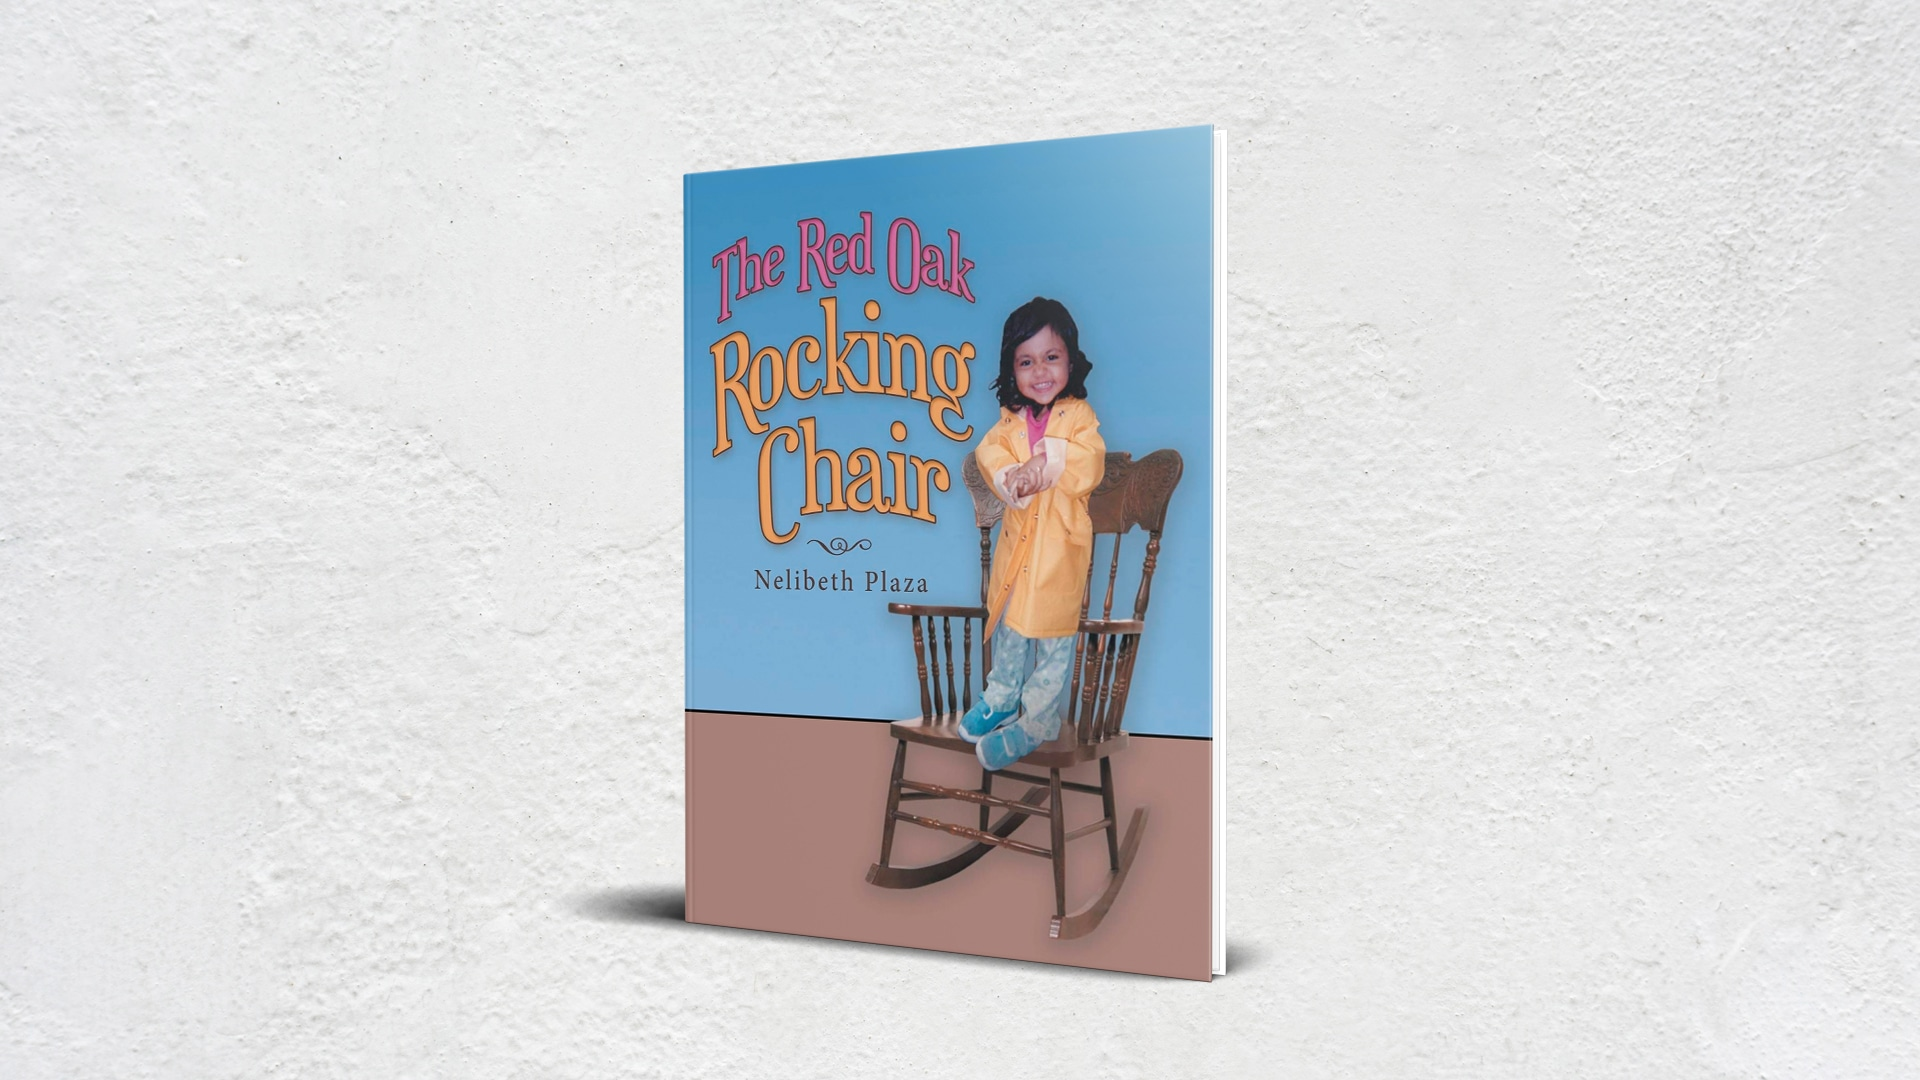 The Red Oak Rocking Chair by Nelibeth Plaza banner